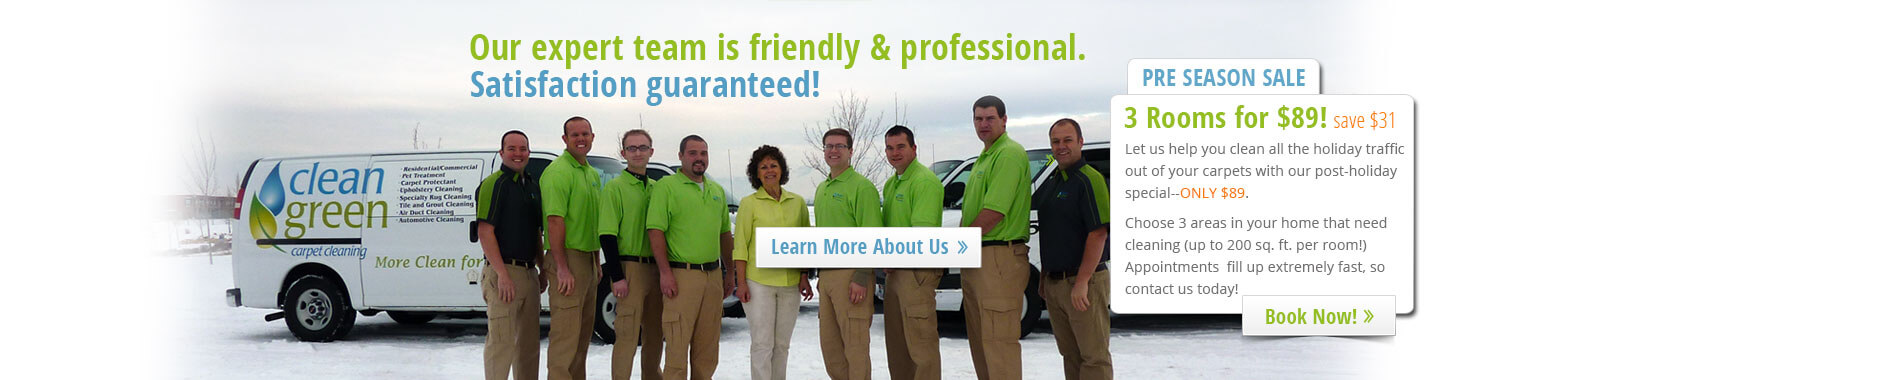 Clean Green Carpet Cleaning Team